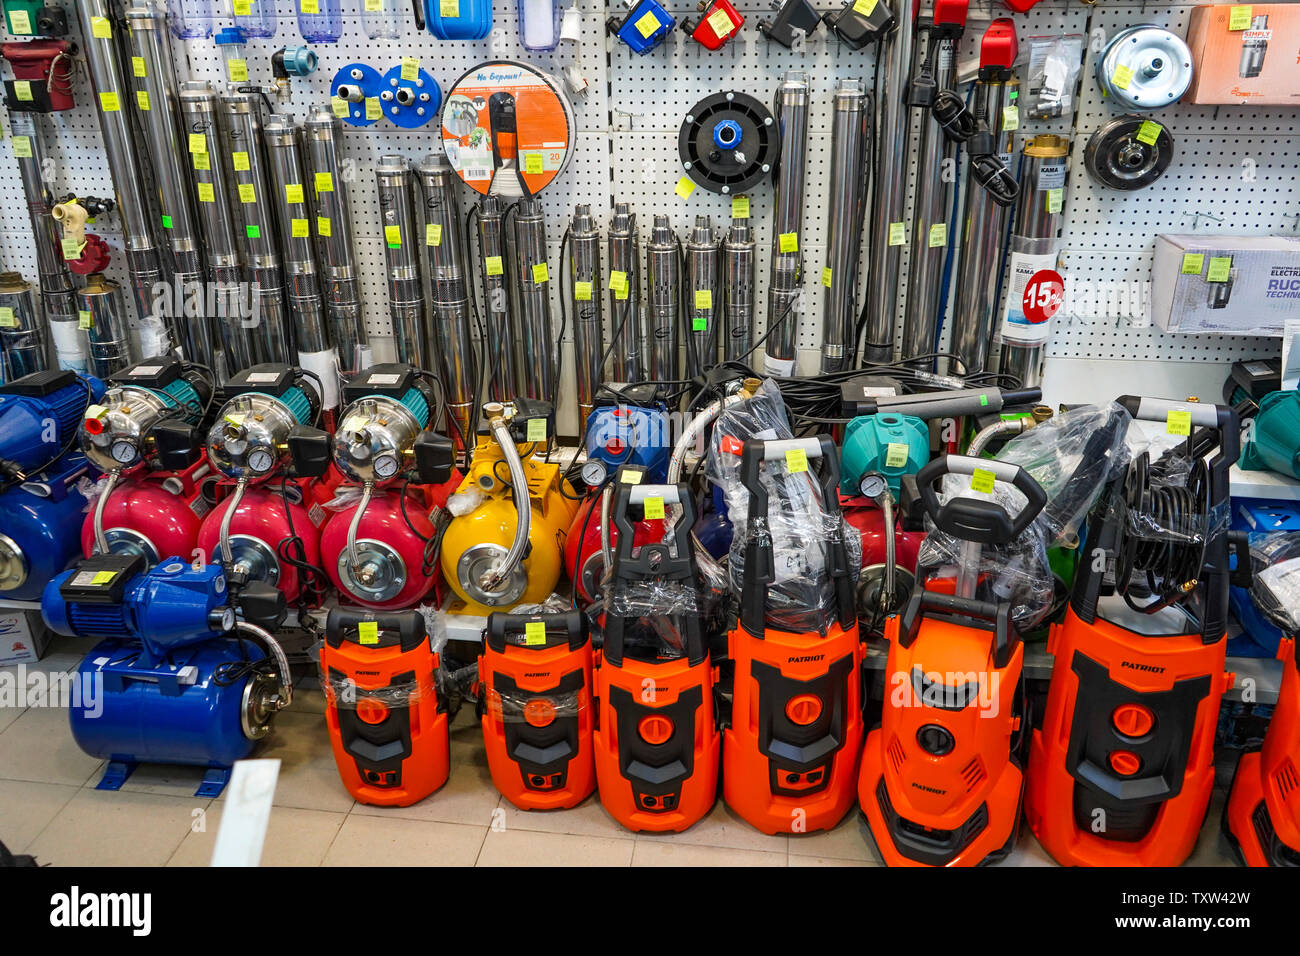 Chelyabinsk Region, Russia - JUNE 2019. Plumbing shop. Rack with goods. Compressors and water pumps. Submersible pumps. Big choice. Stock Photo